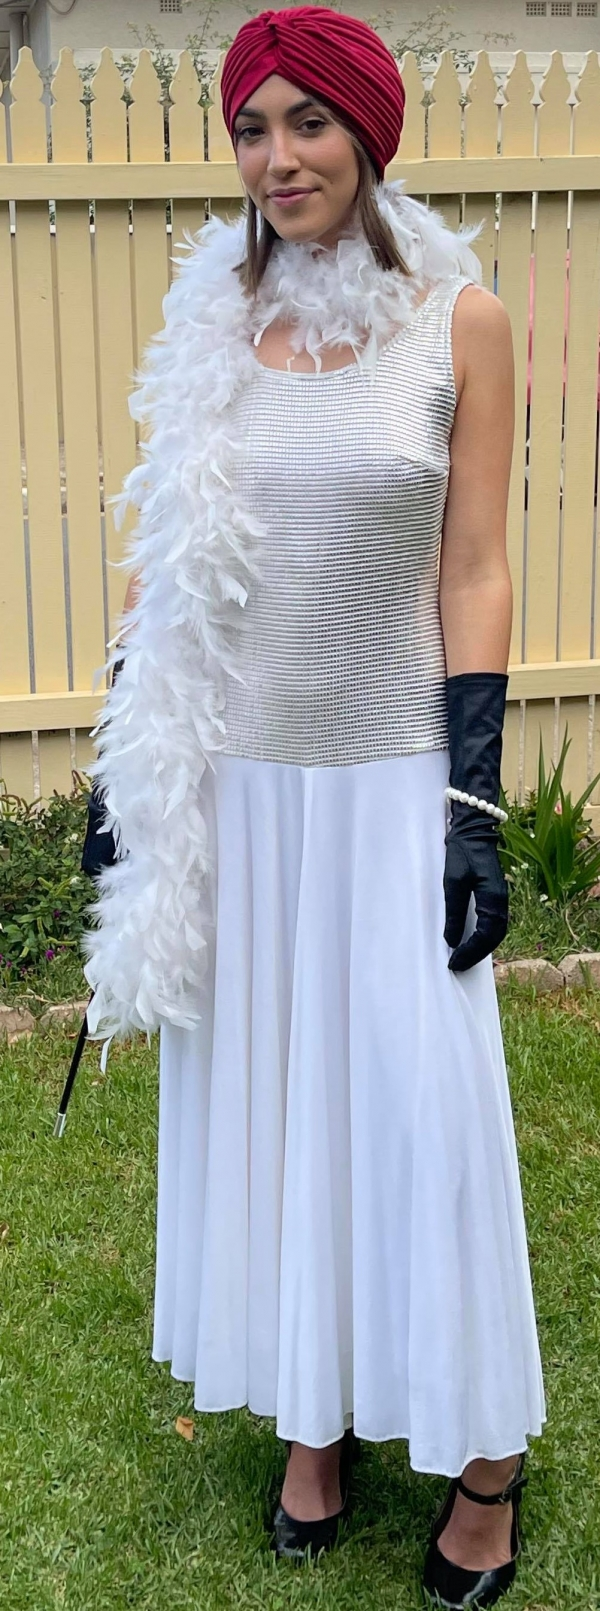 1920's inspired, white, jersey/sequinned dress by 'Geoff bade' includes feather boa & cloche, size 10